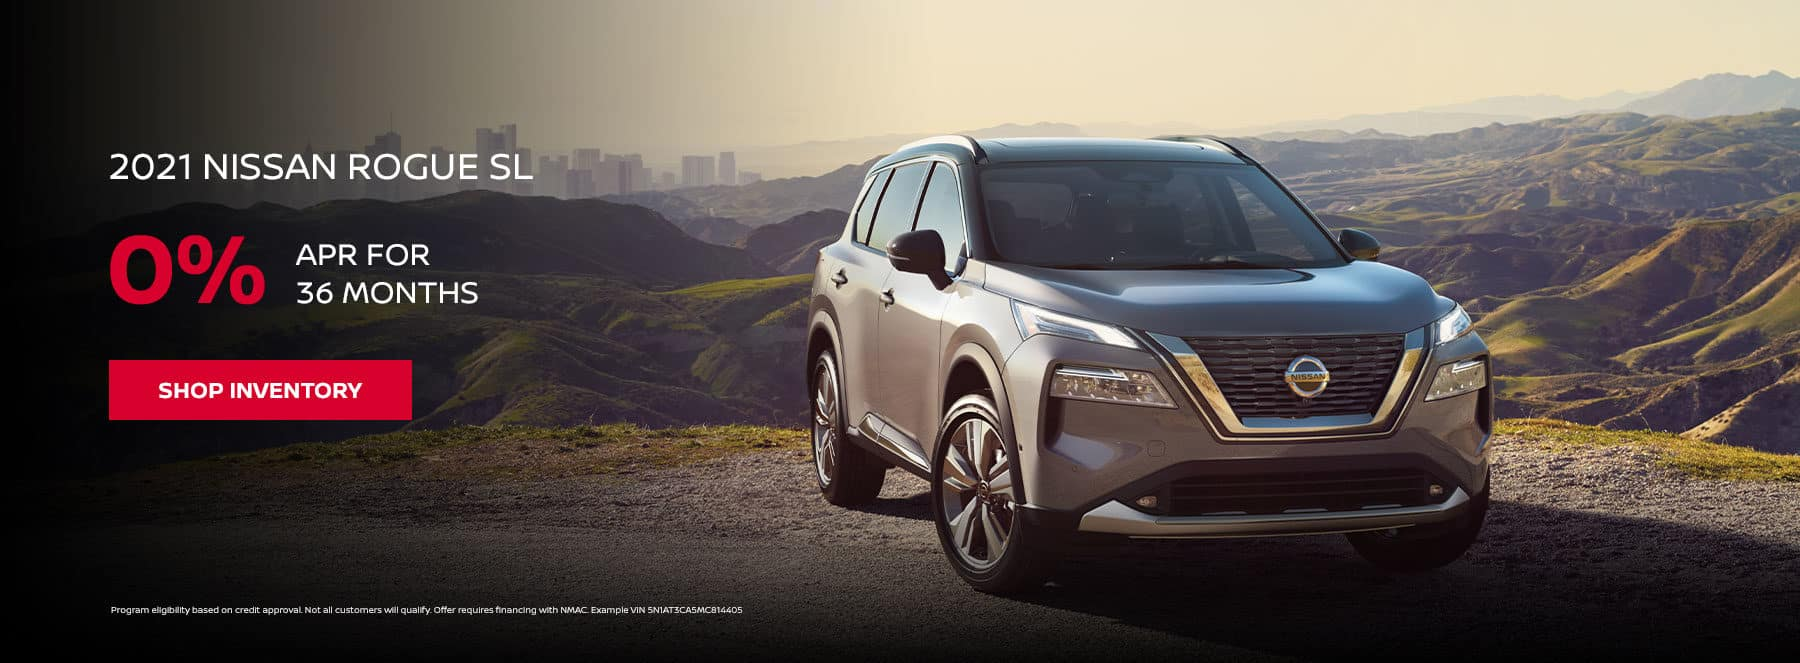 2021 Nissan Rogue SL, 0% APR for 36 months